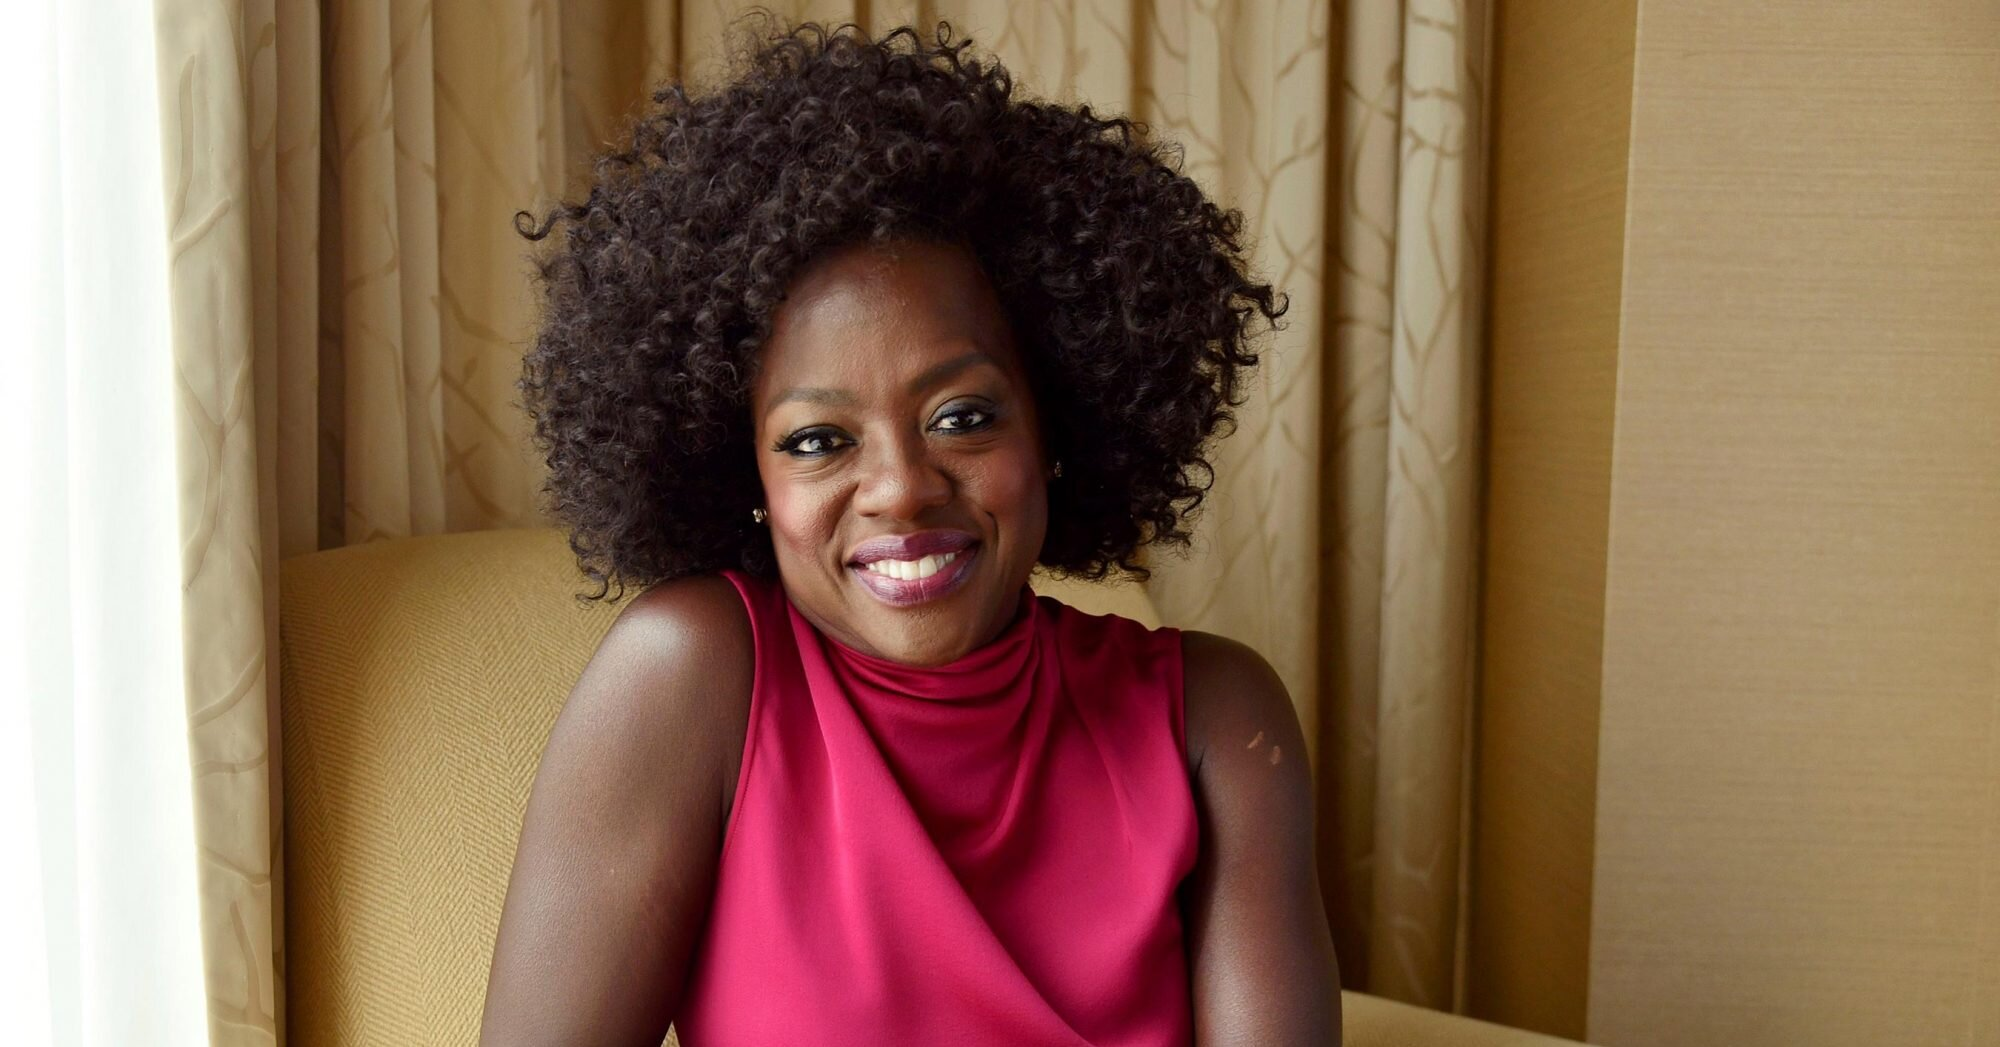 Viola Davis regrets role in 'The Help': 'Feels like I betrayed myself, and my people'